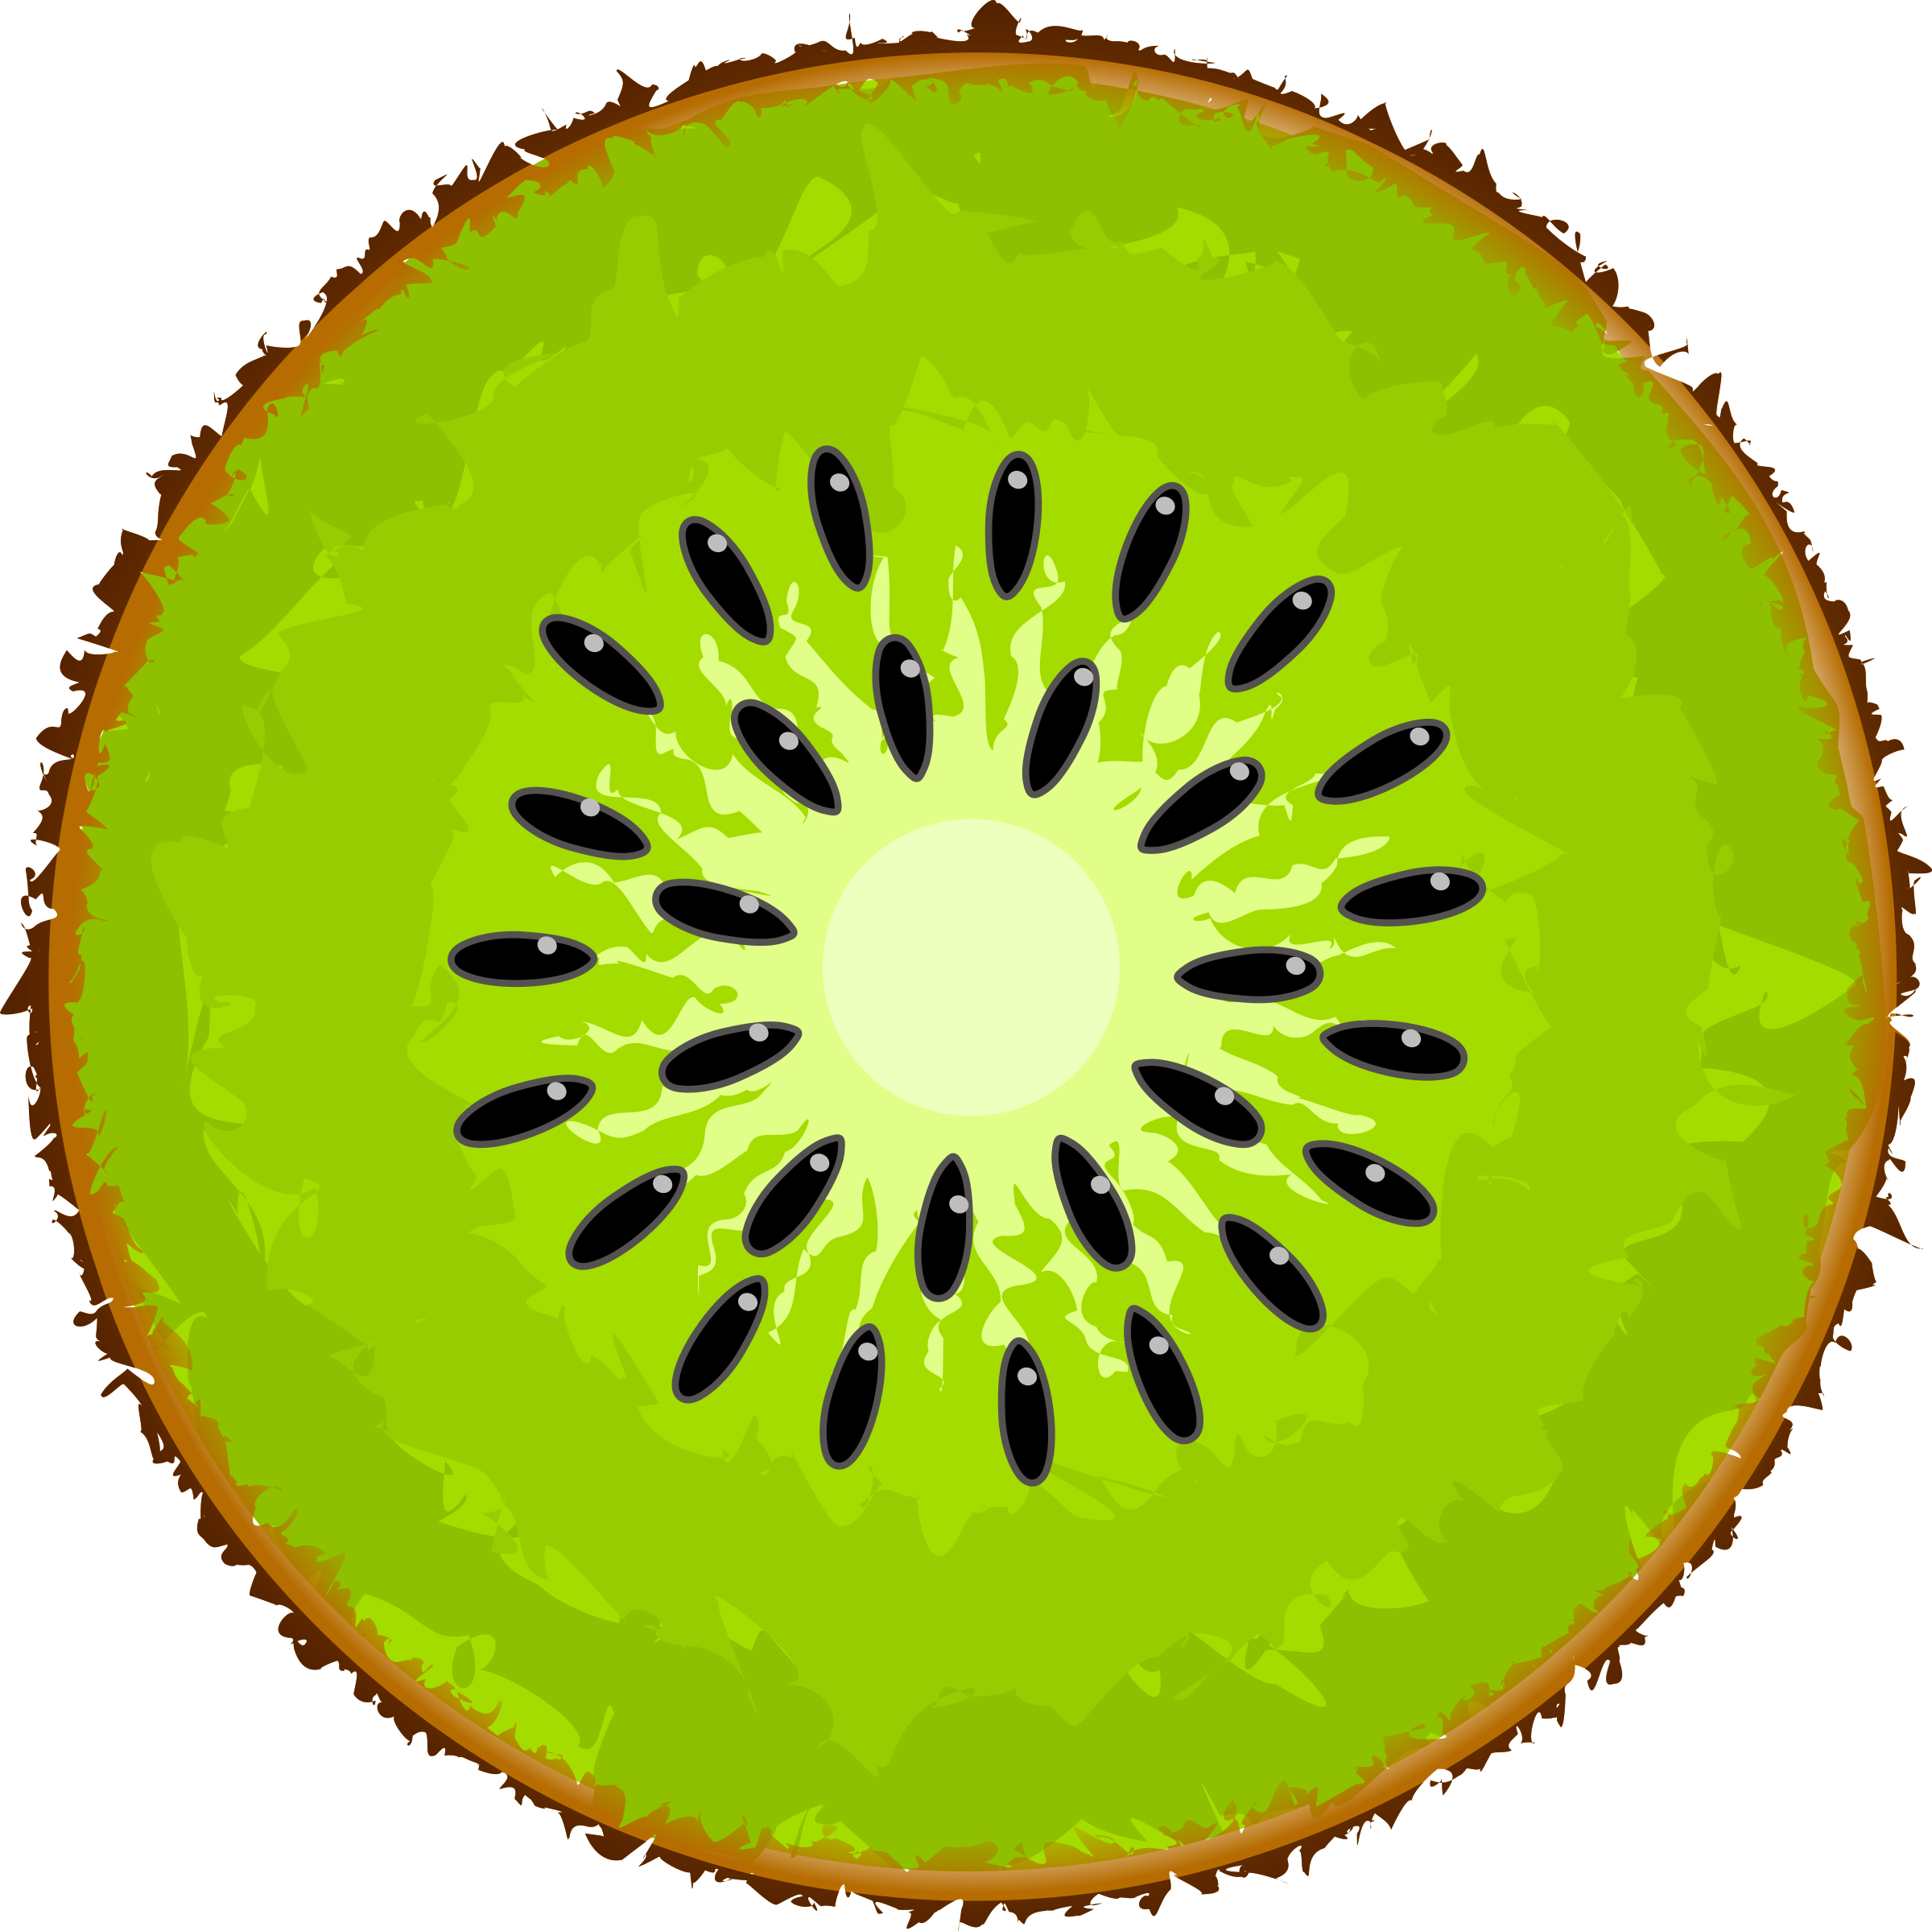 Free Kiwi Cliparts, Download Free Clip Art, Free Clip Art on.